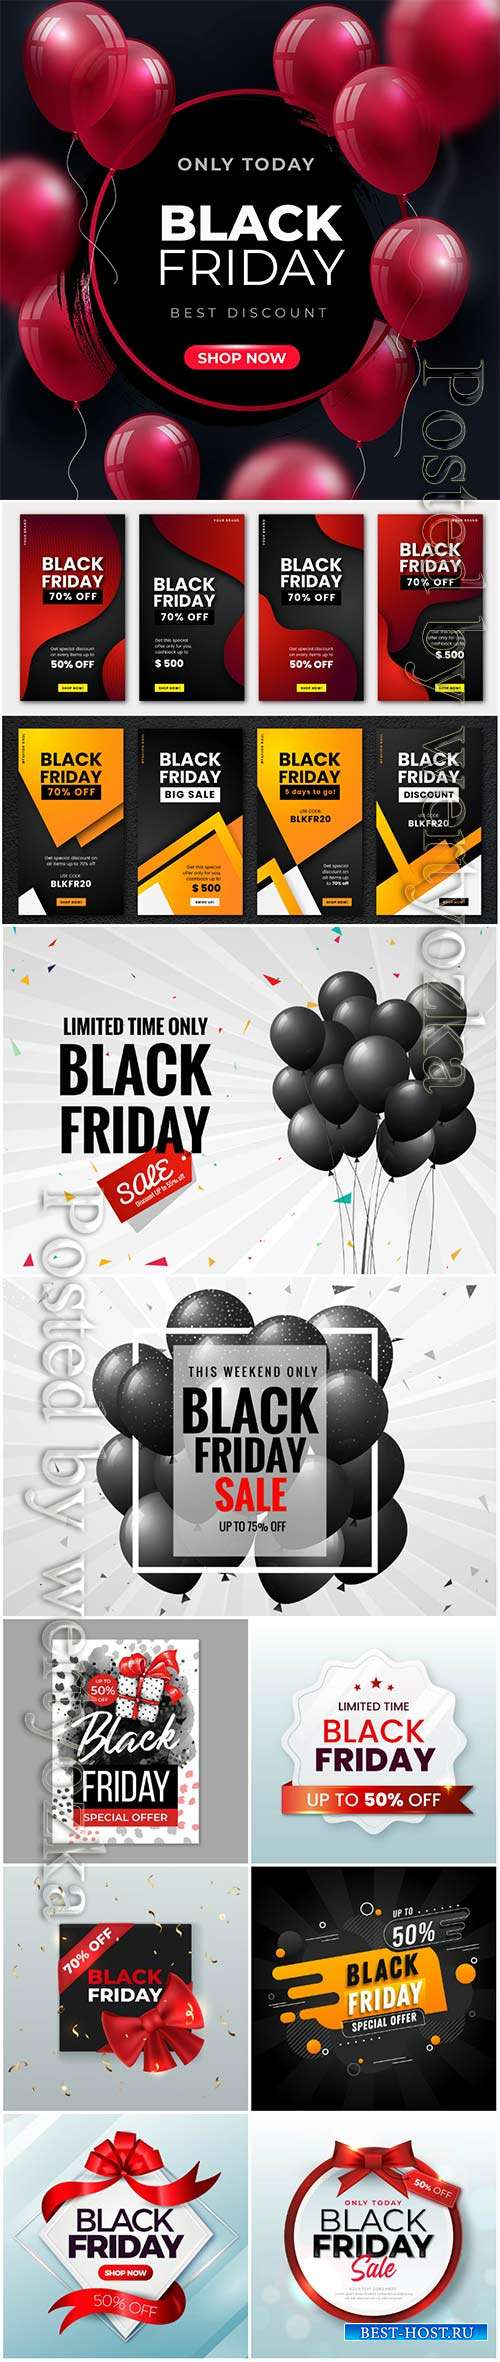 Realistic black friday banner